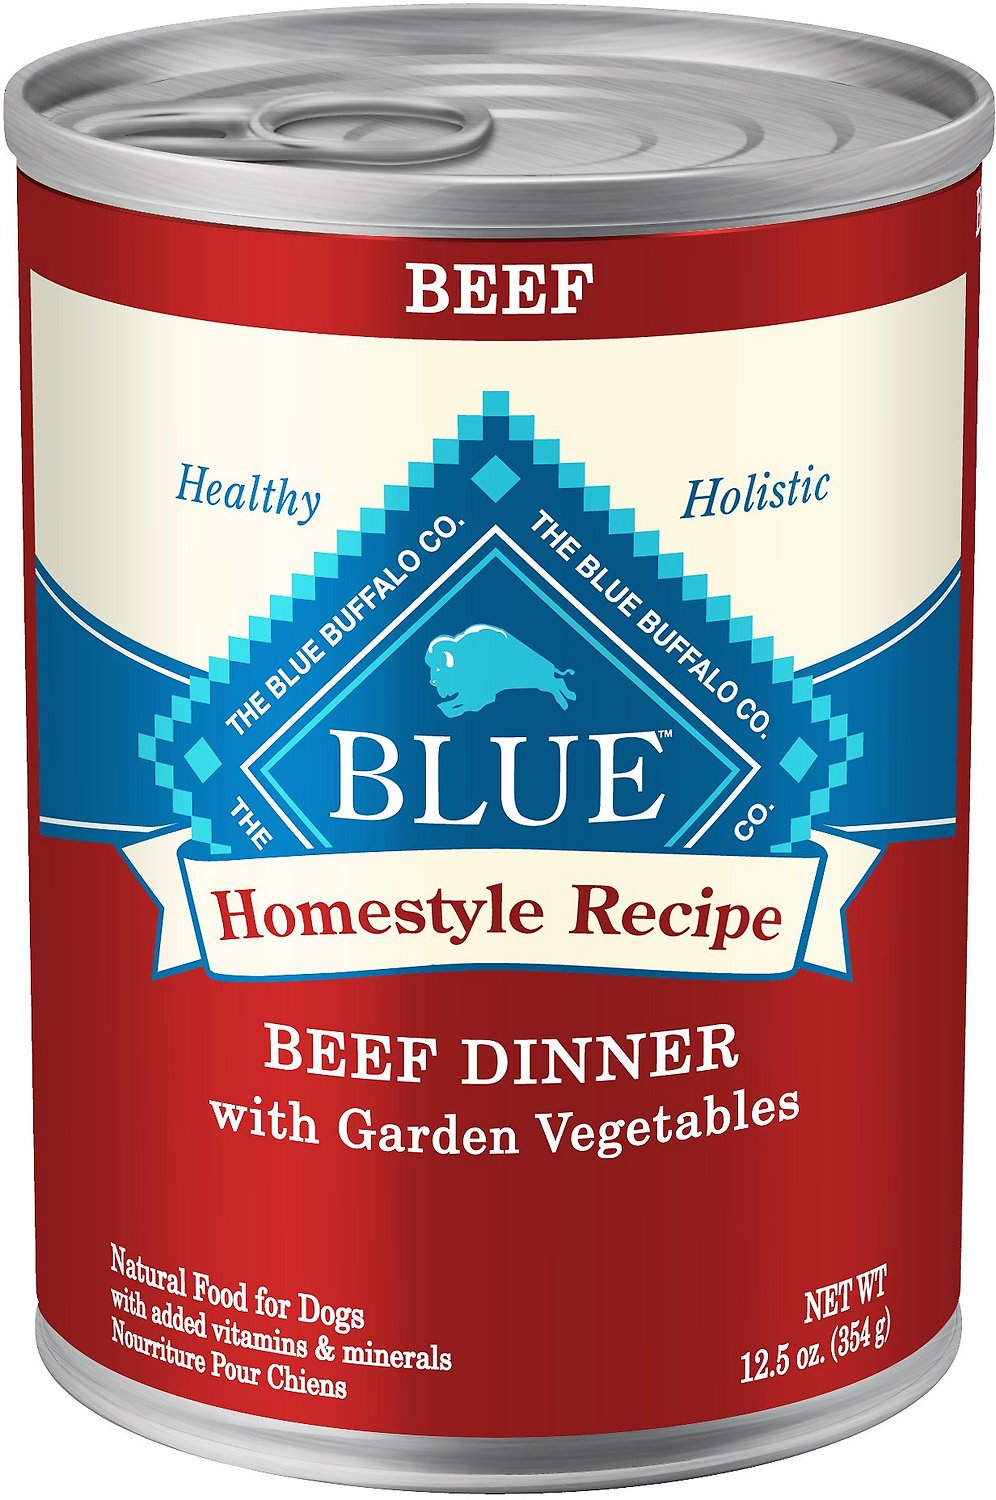 Blue Buffalo Homestyle Recipe Beef Dinner with Garden Vegetables & Sweet Potatoes Canned Dog Food, 12.5-oz